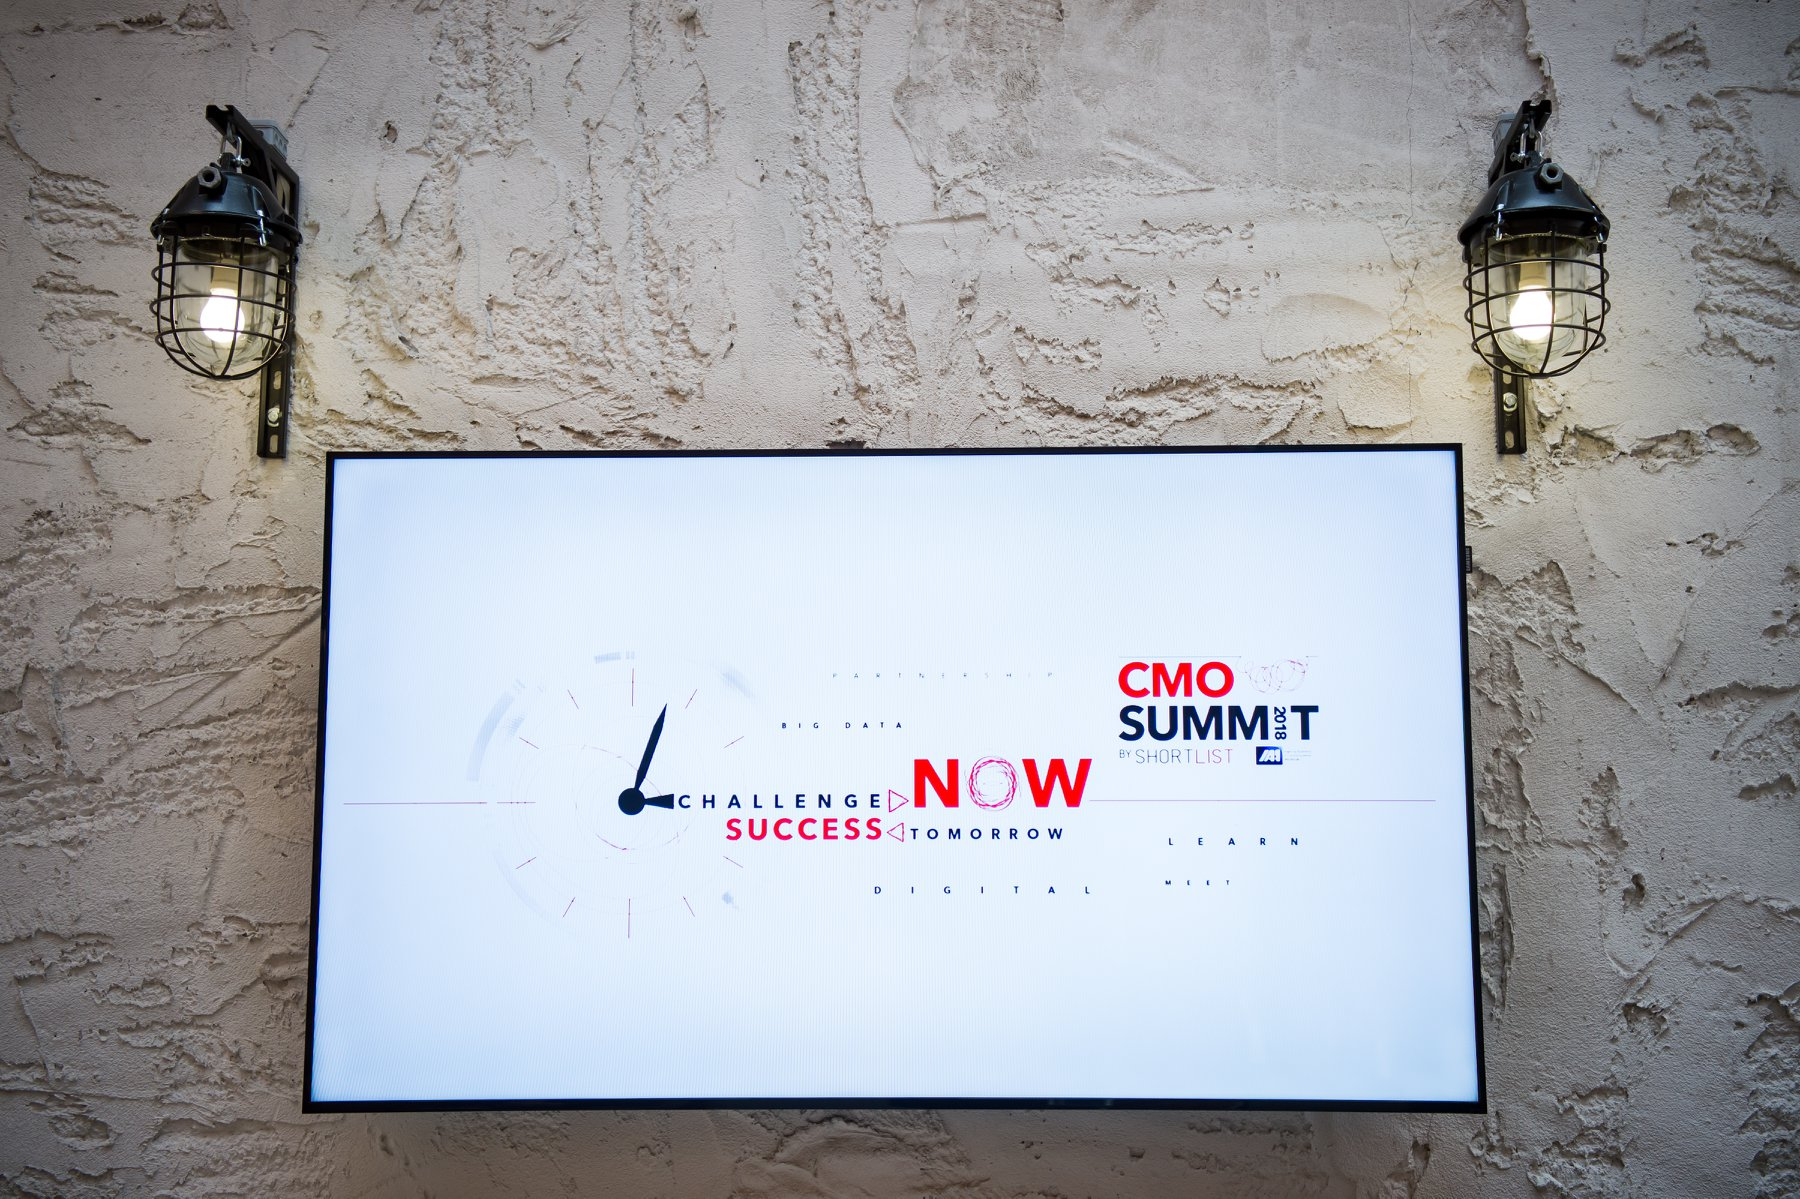 CMO Summit 2018